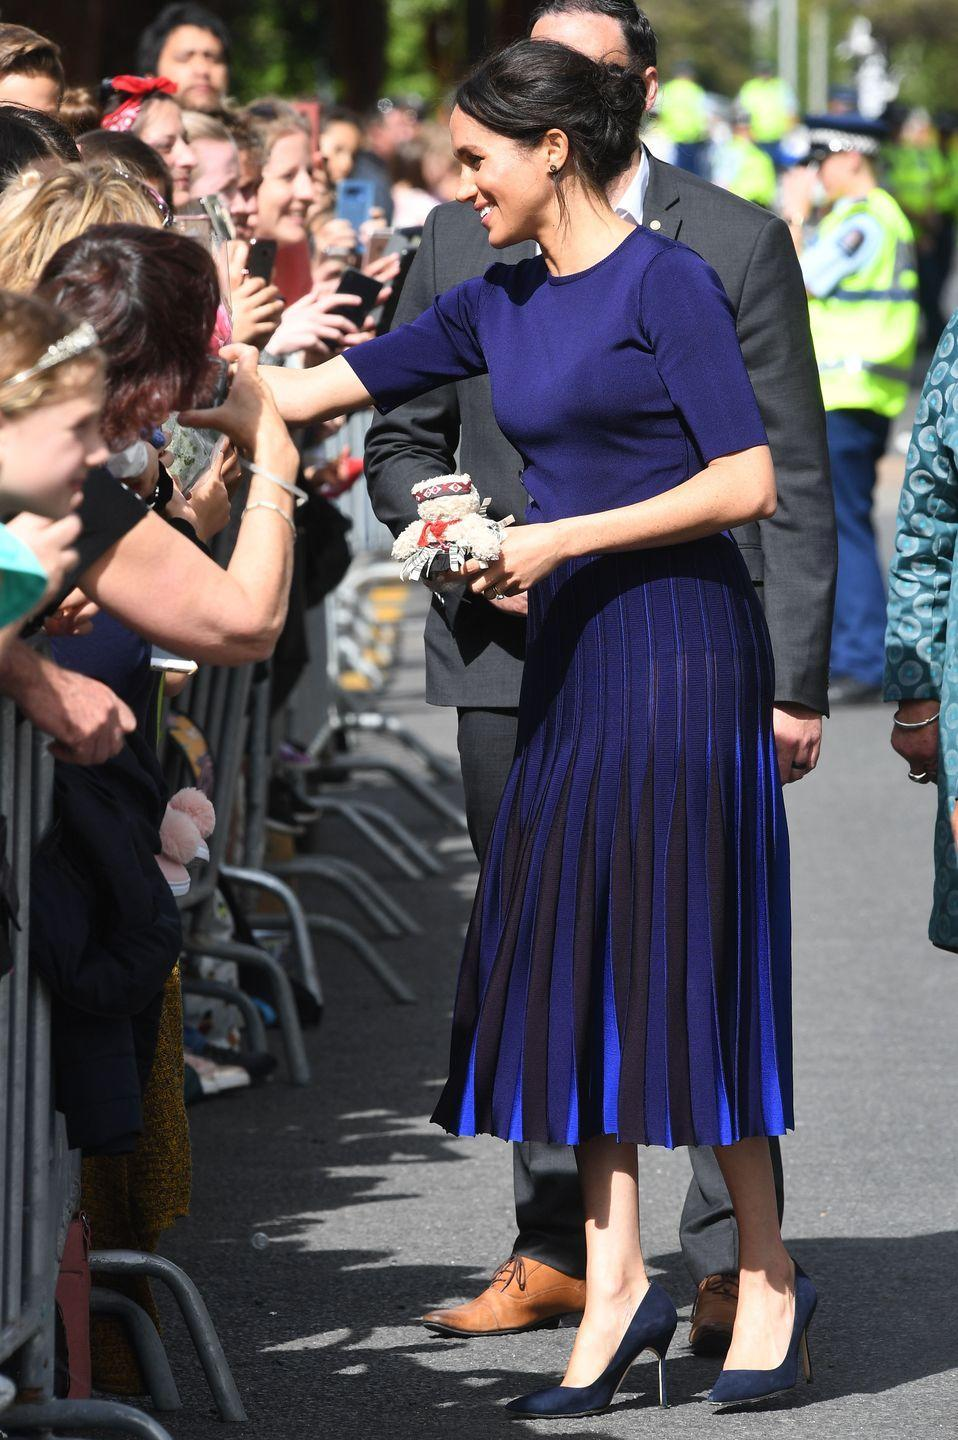 """<p>For one of her final outfits of the royal tour, Meghan stepped out in a custom navy Givenchy look. The Duchess also wore a pair of pumps by Manolo Blahnik.</p><p><a class=""""link rapid-noclick-resp"""" href=""""https://www.barneys.com/product/manolo-blahnik-bb-pumps-503345489.html"""" rel=""""nofollow noopener"""" target=""""_blank"""" data-ylk=""""slk:SHOP NOW"""">SHOP NOW</a> <em>Manolo Blahnik Pumps, $625</em></p>"""